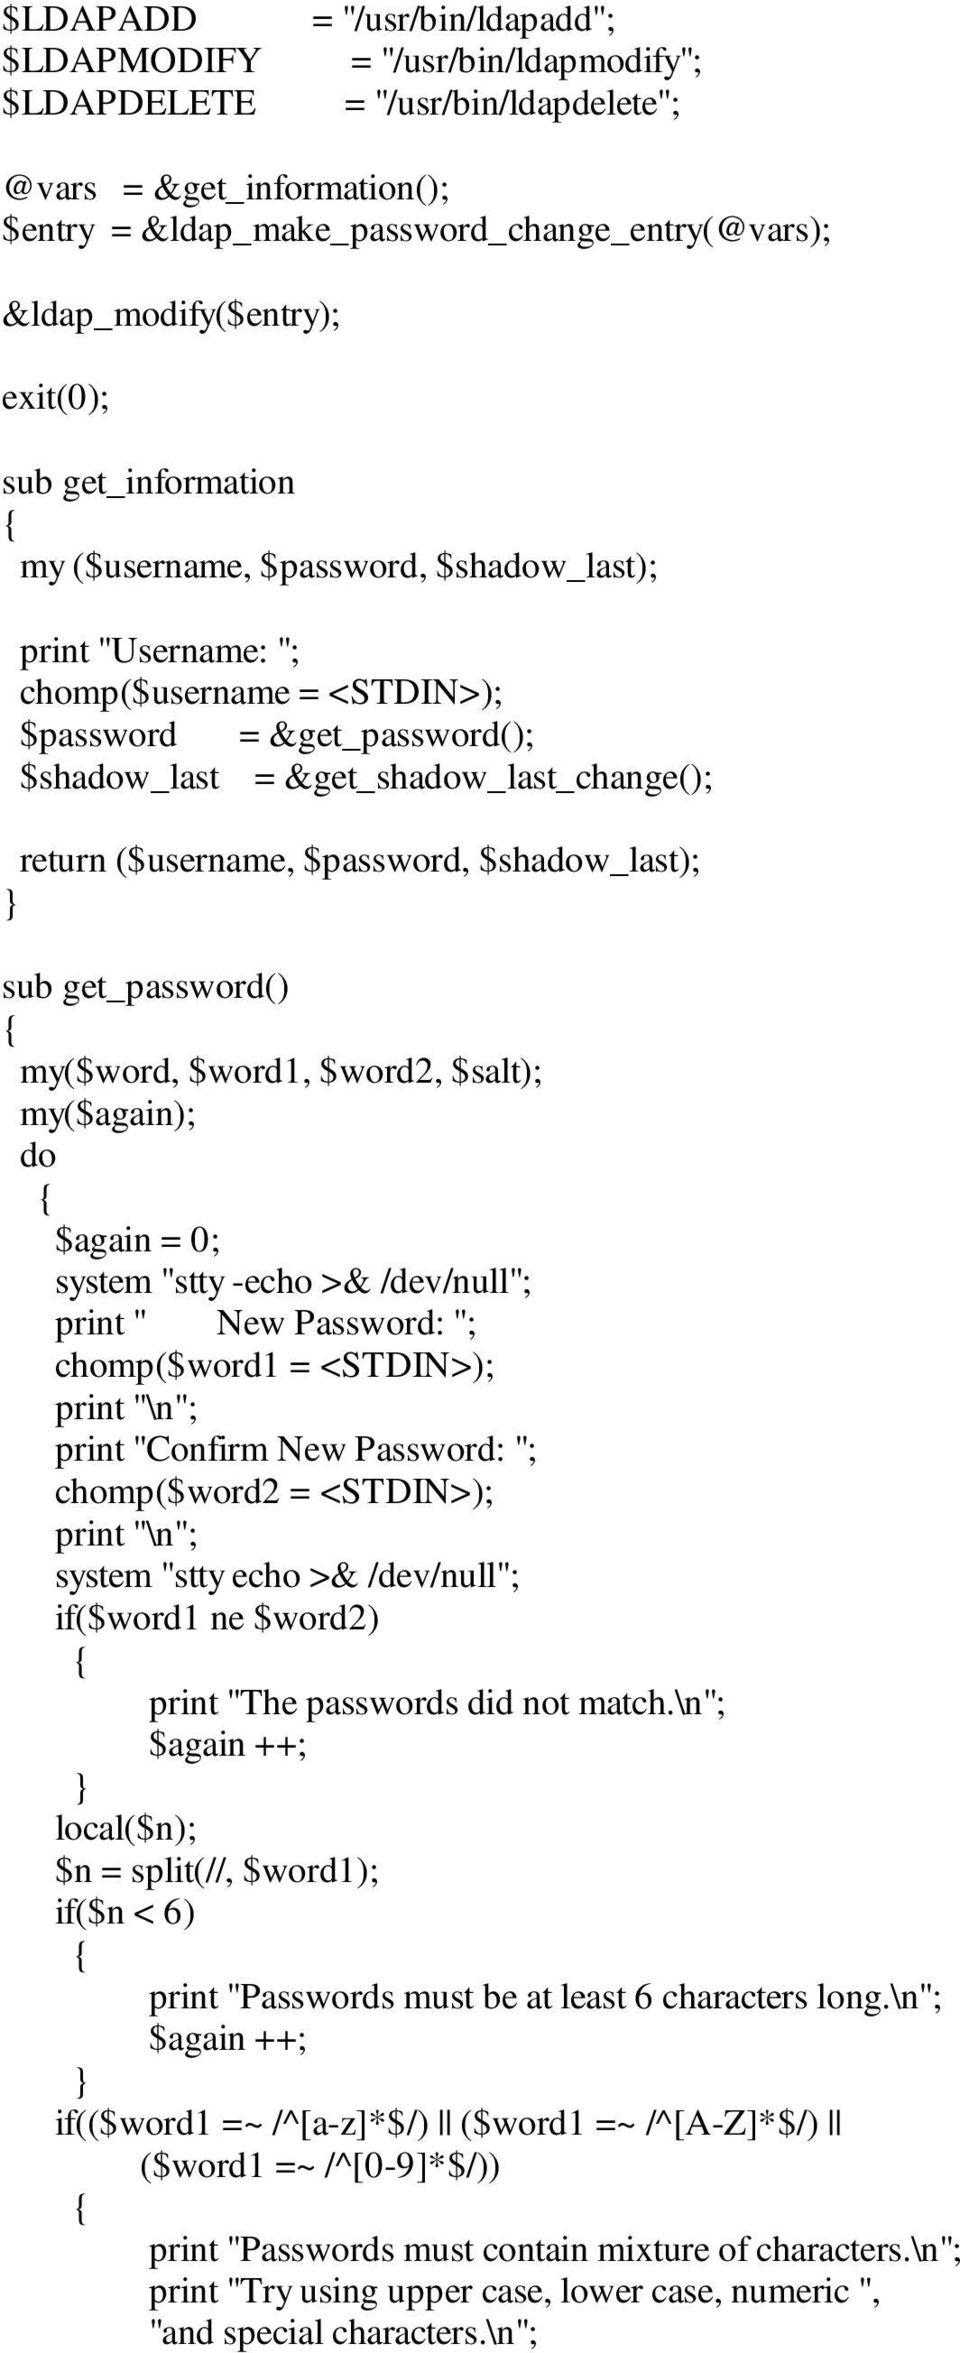 "&get_shadow_last_change(); return ($username, $password, $shadow_last); sub get_password() my($word, $word1, $word2, $salt); my($again); do $again = 0; system ""stty -echo >& /dev/null""; print "" New"